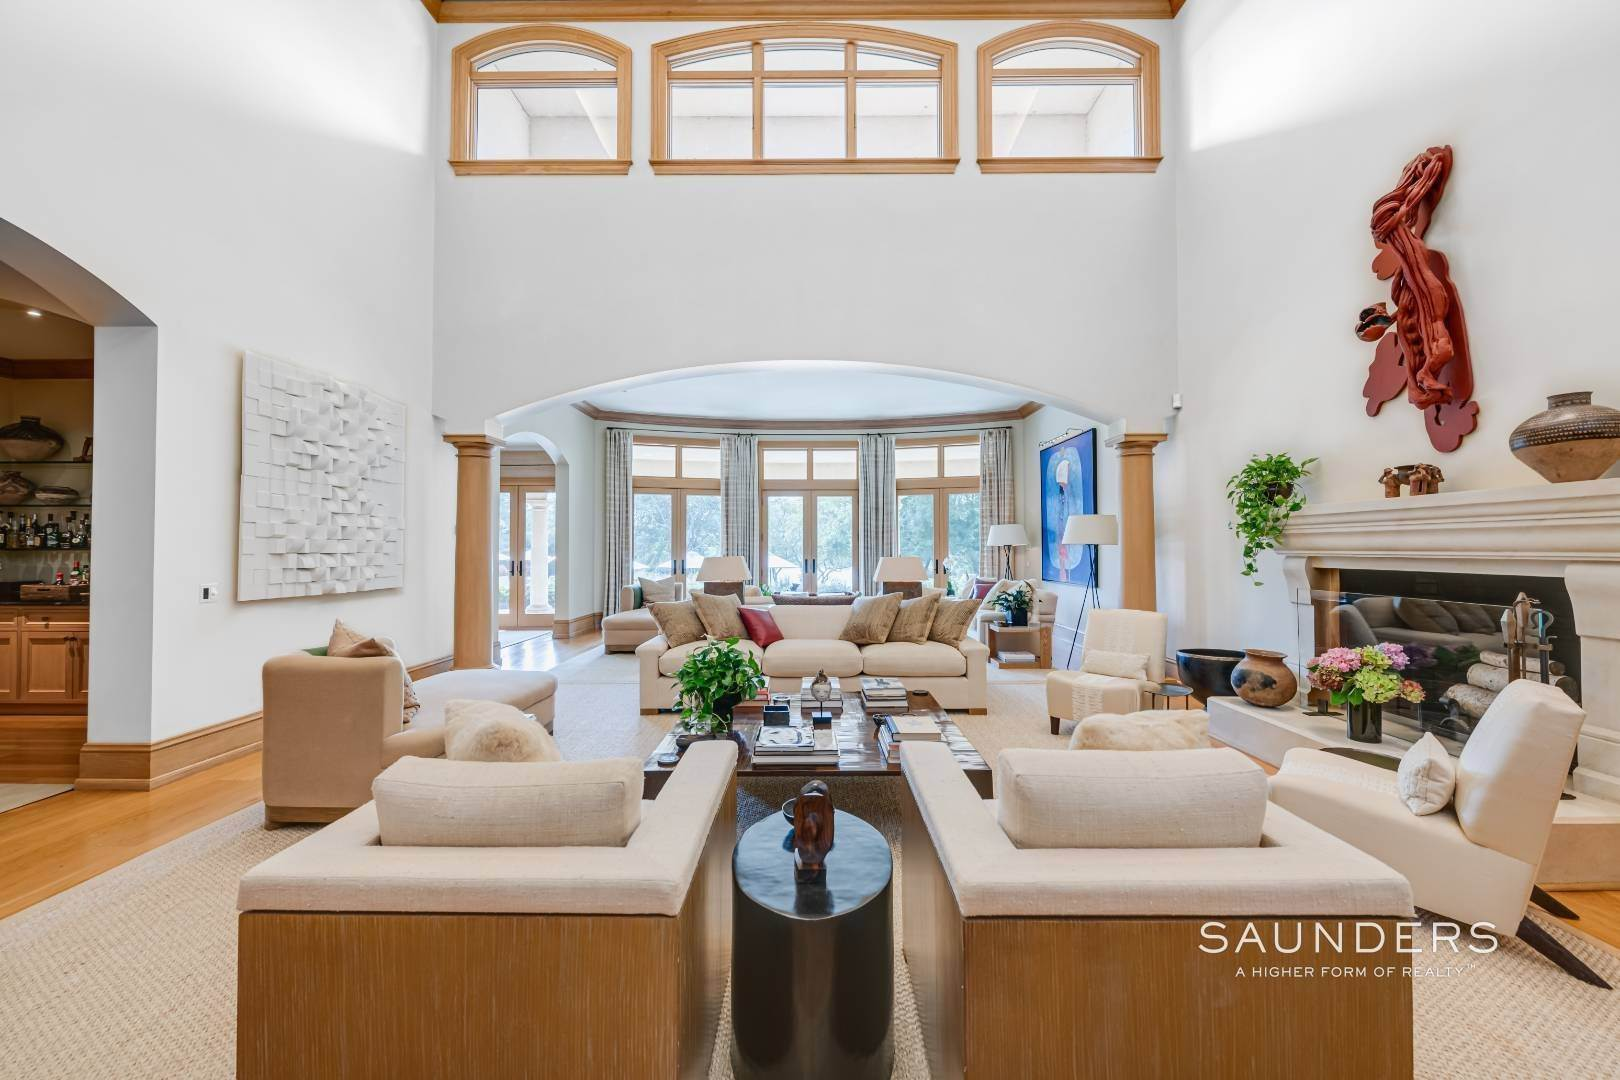 2. Single Family Homes for Sale at Secluded Bridgehampton Waterfront Estate 160 & 164 Trelawney Road, Bridgehampton, Southampton Town, NY 11932